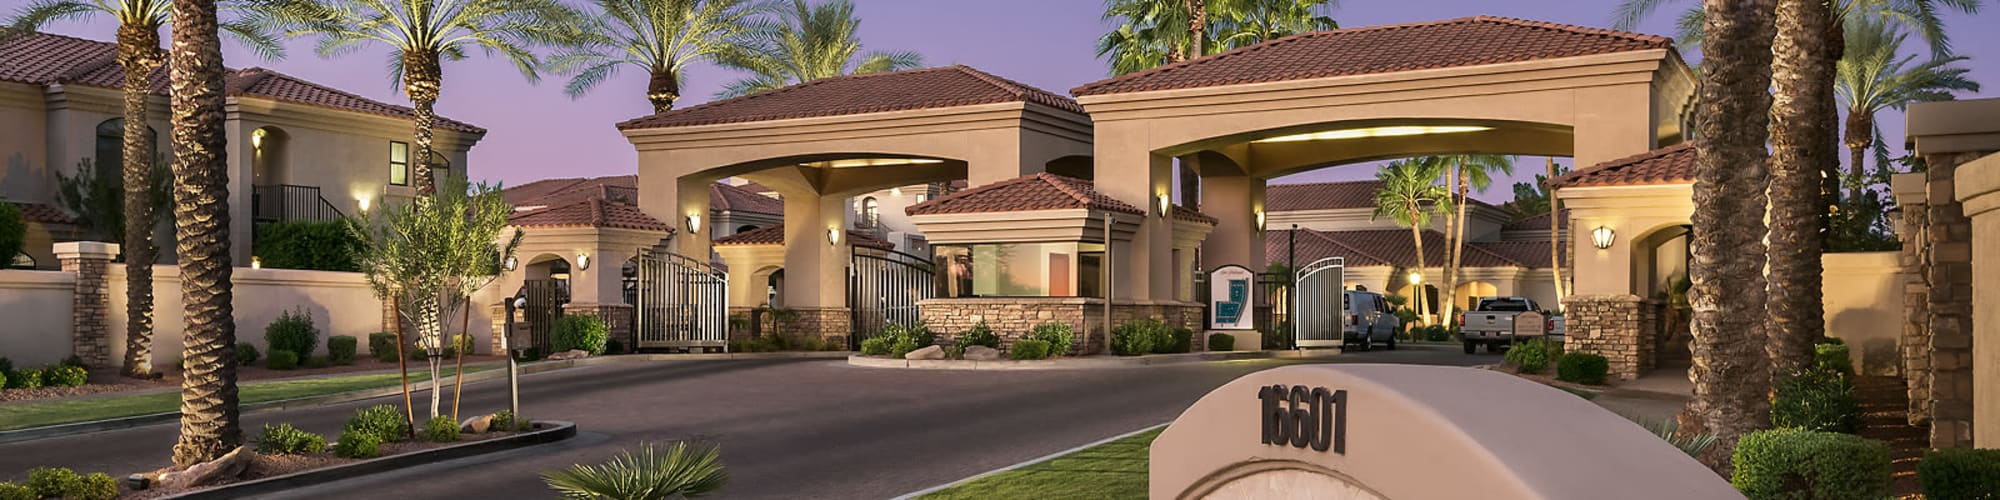 Apply to live at San Pedregal in Phoenix, Arizona